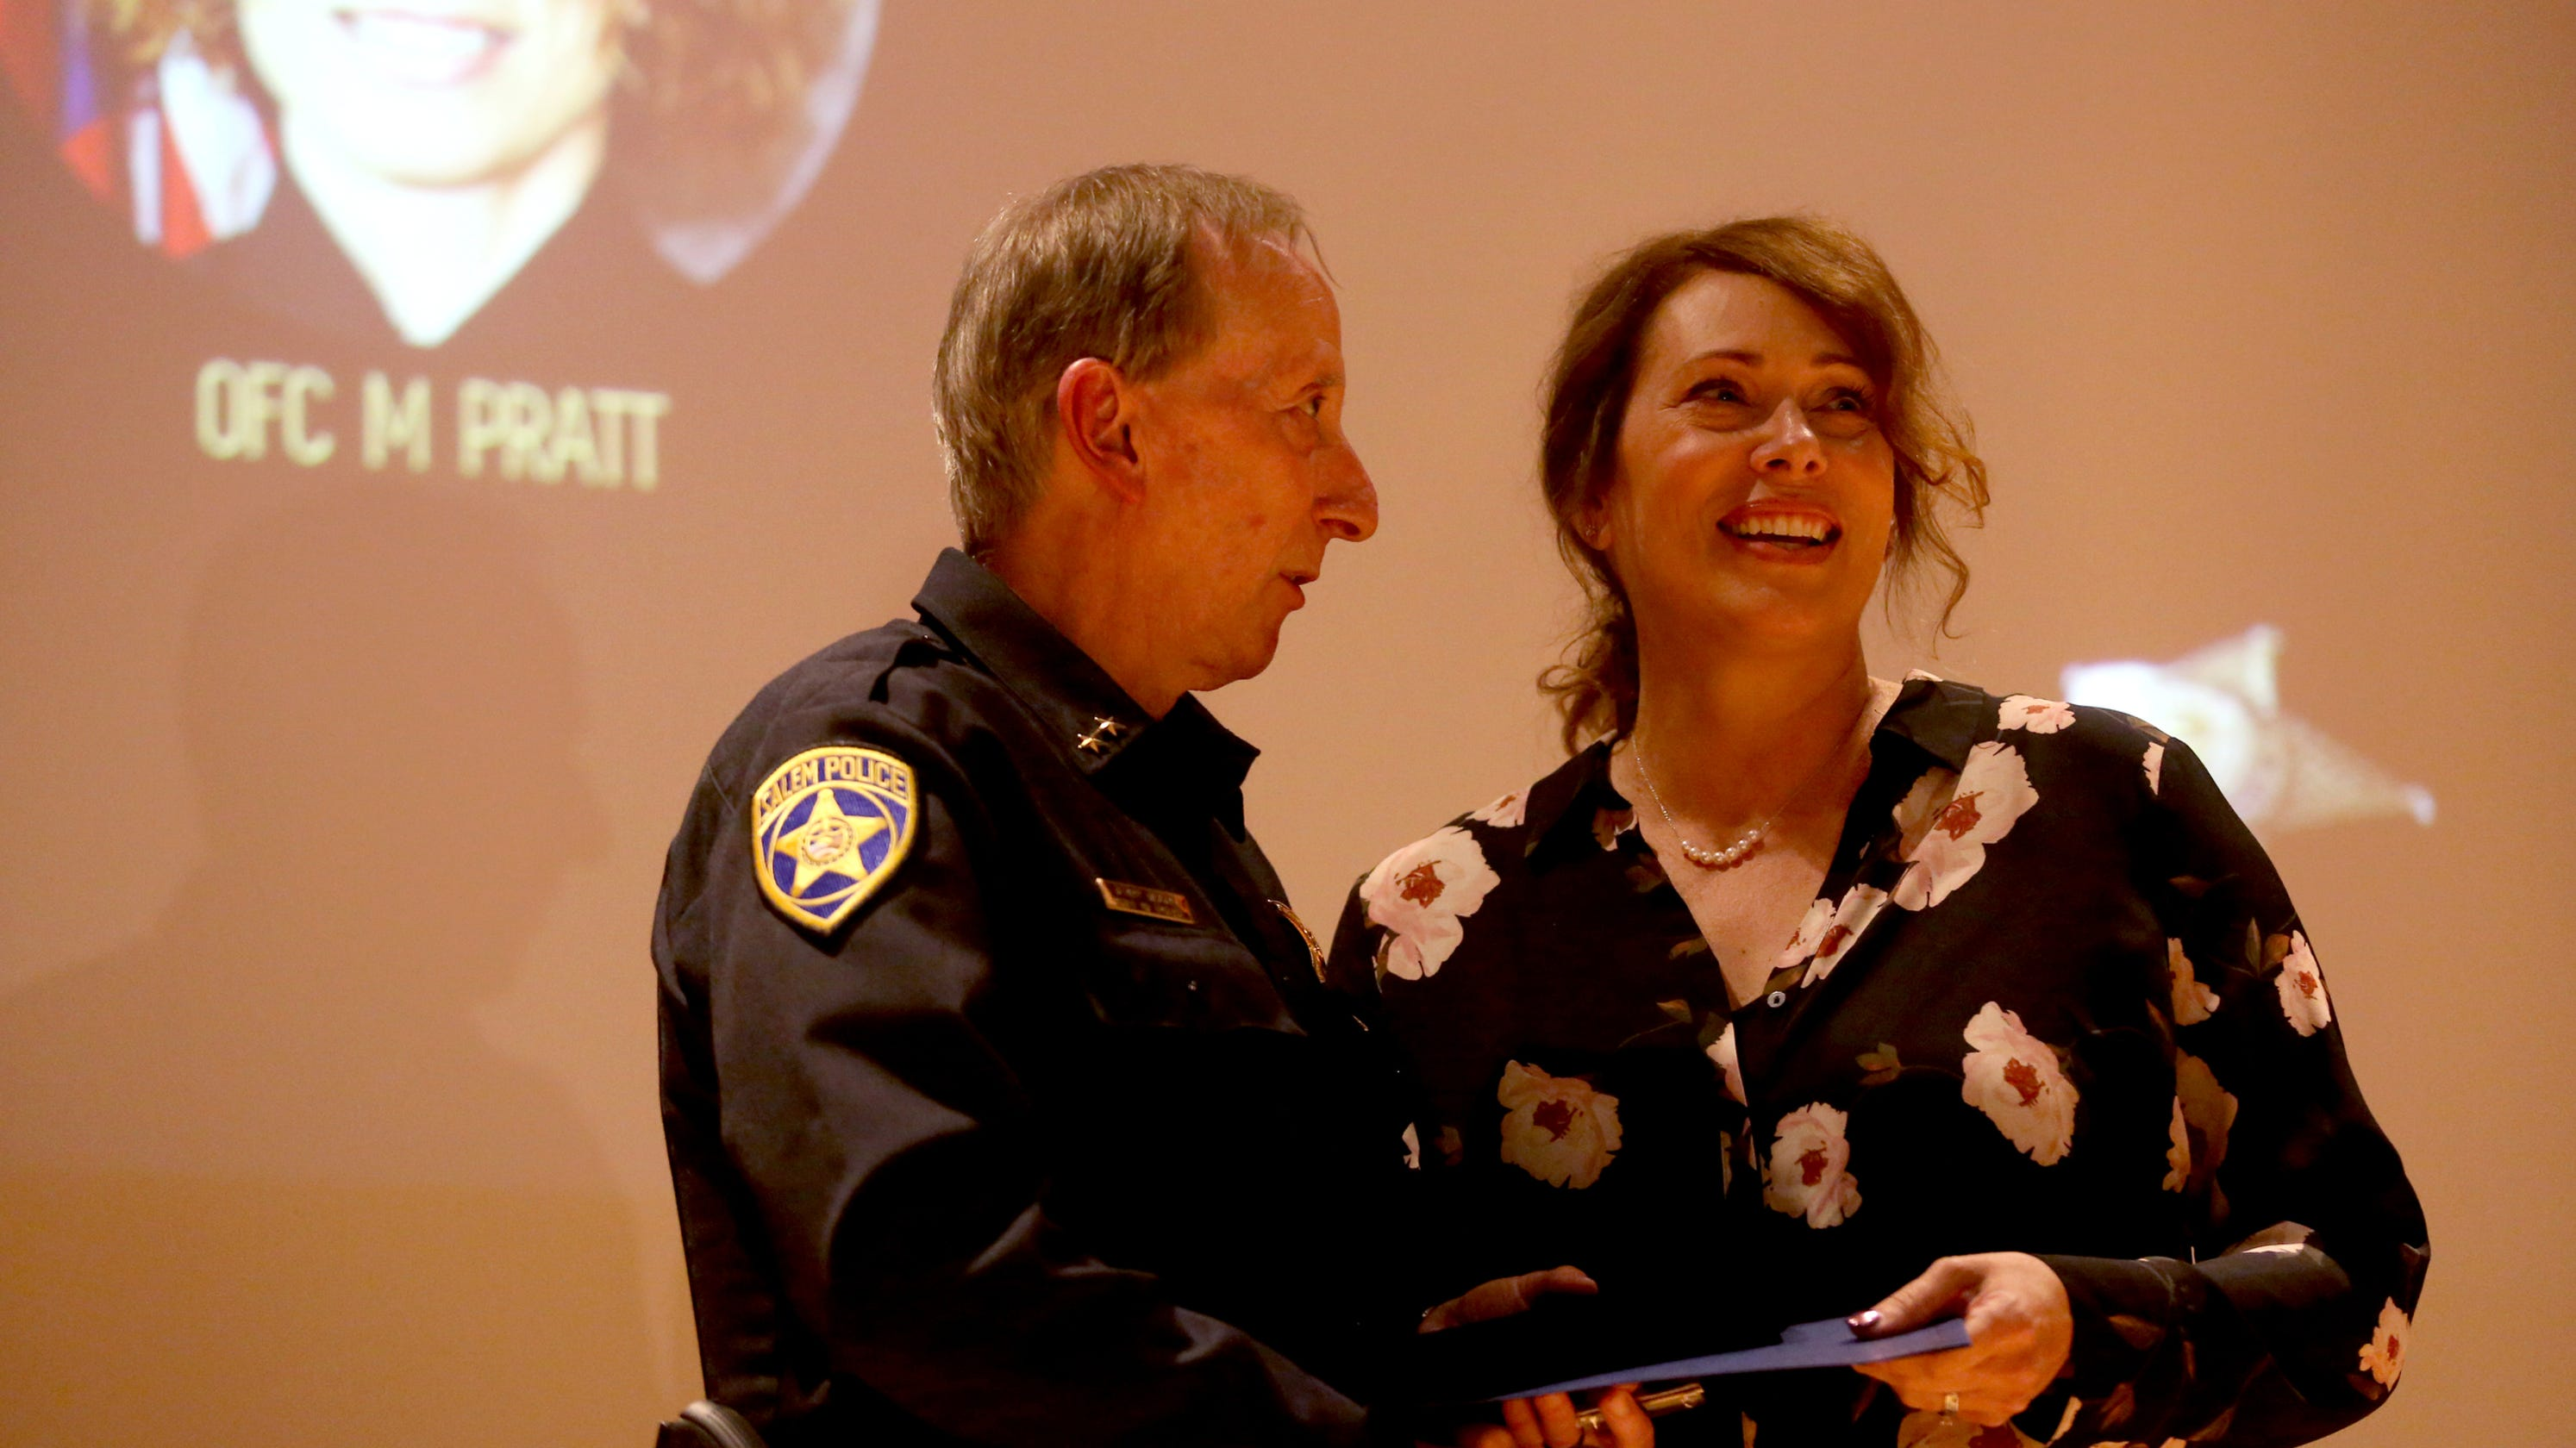 PHOTOS: Salem Police Honor Officer Who Was Shot And Others